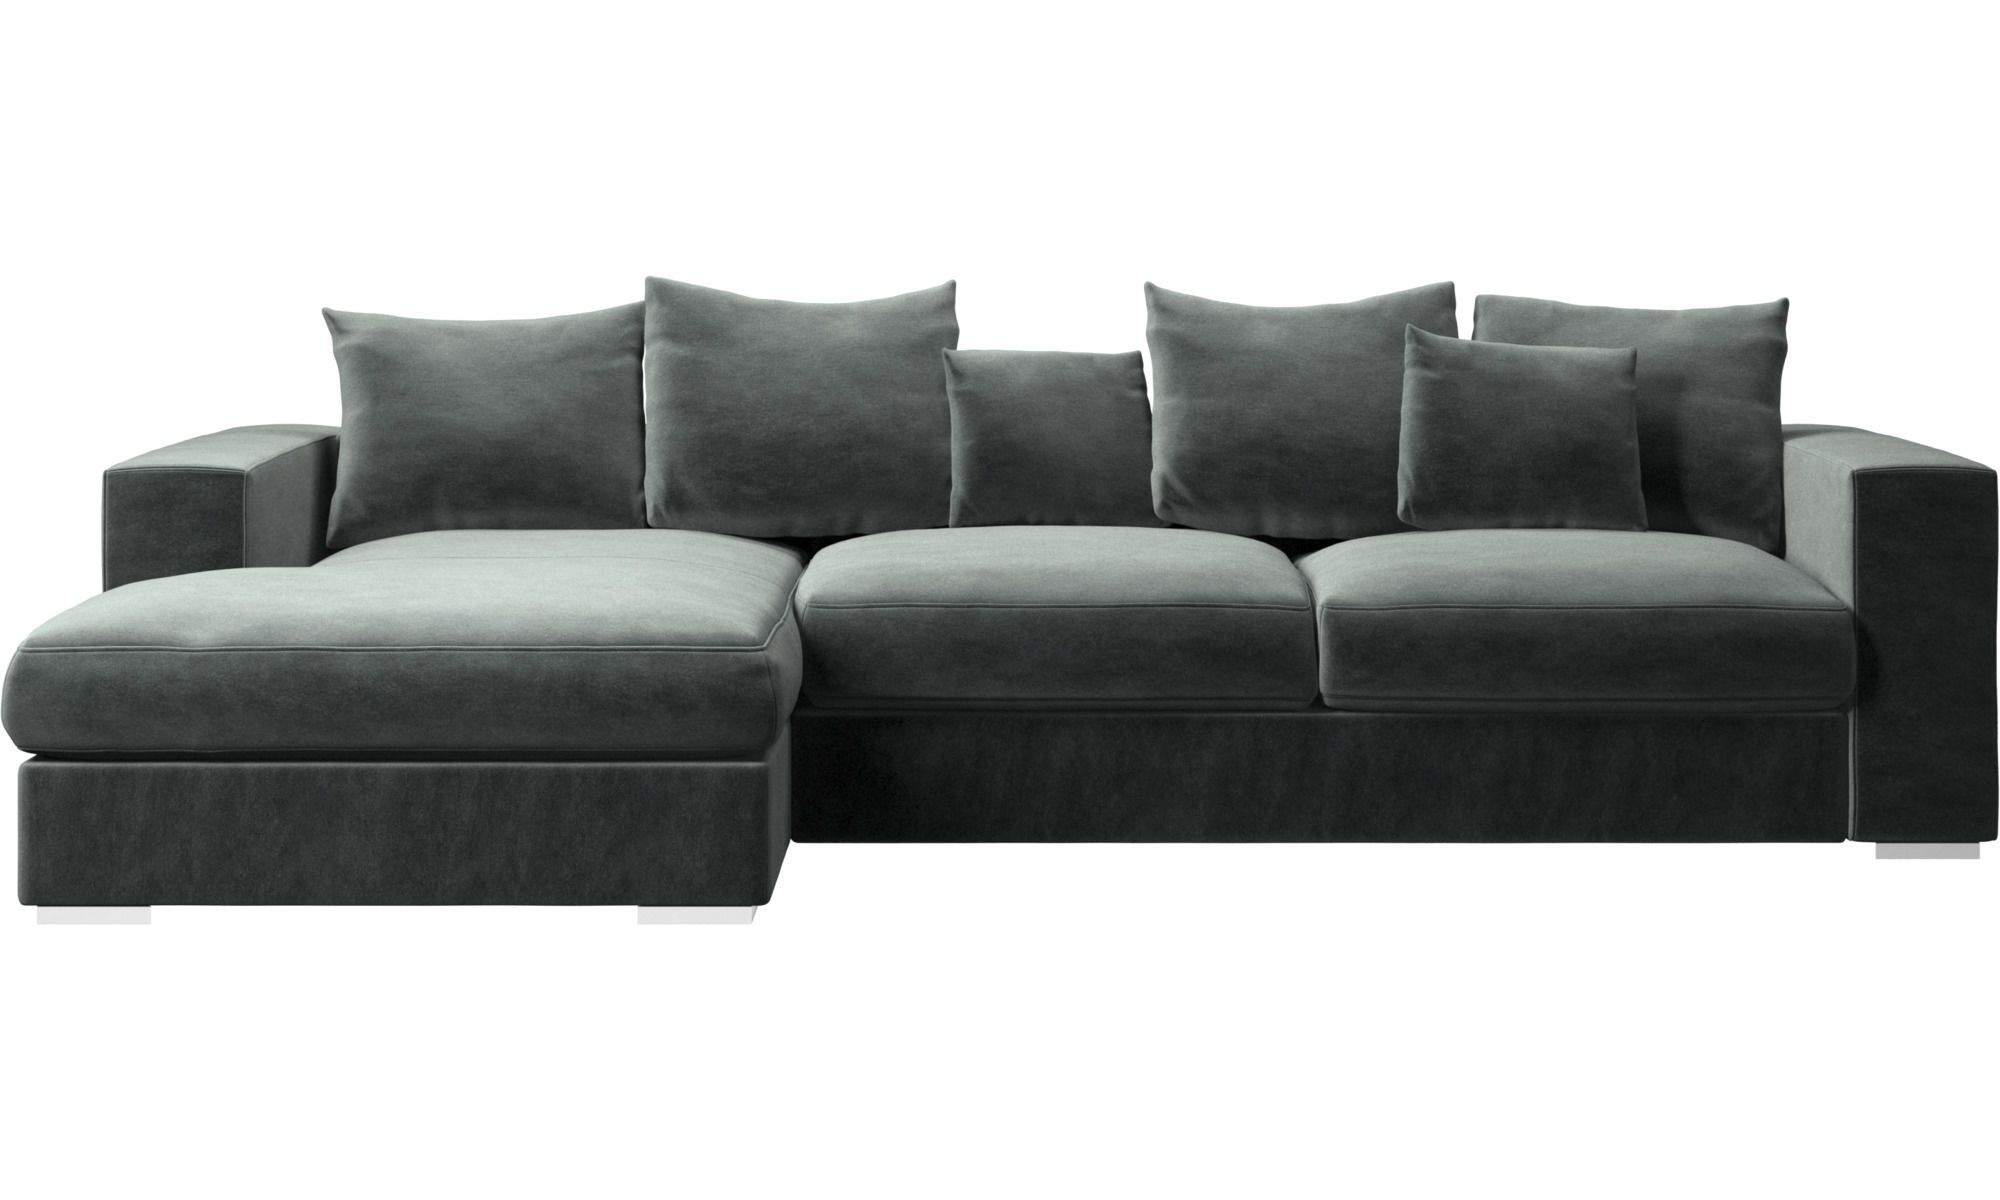 Cenova Sofa With Resting Unit Comfortable Sectional Sofa Chaise